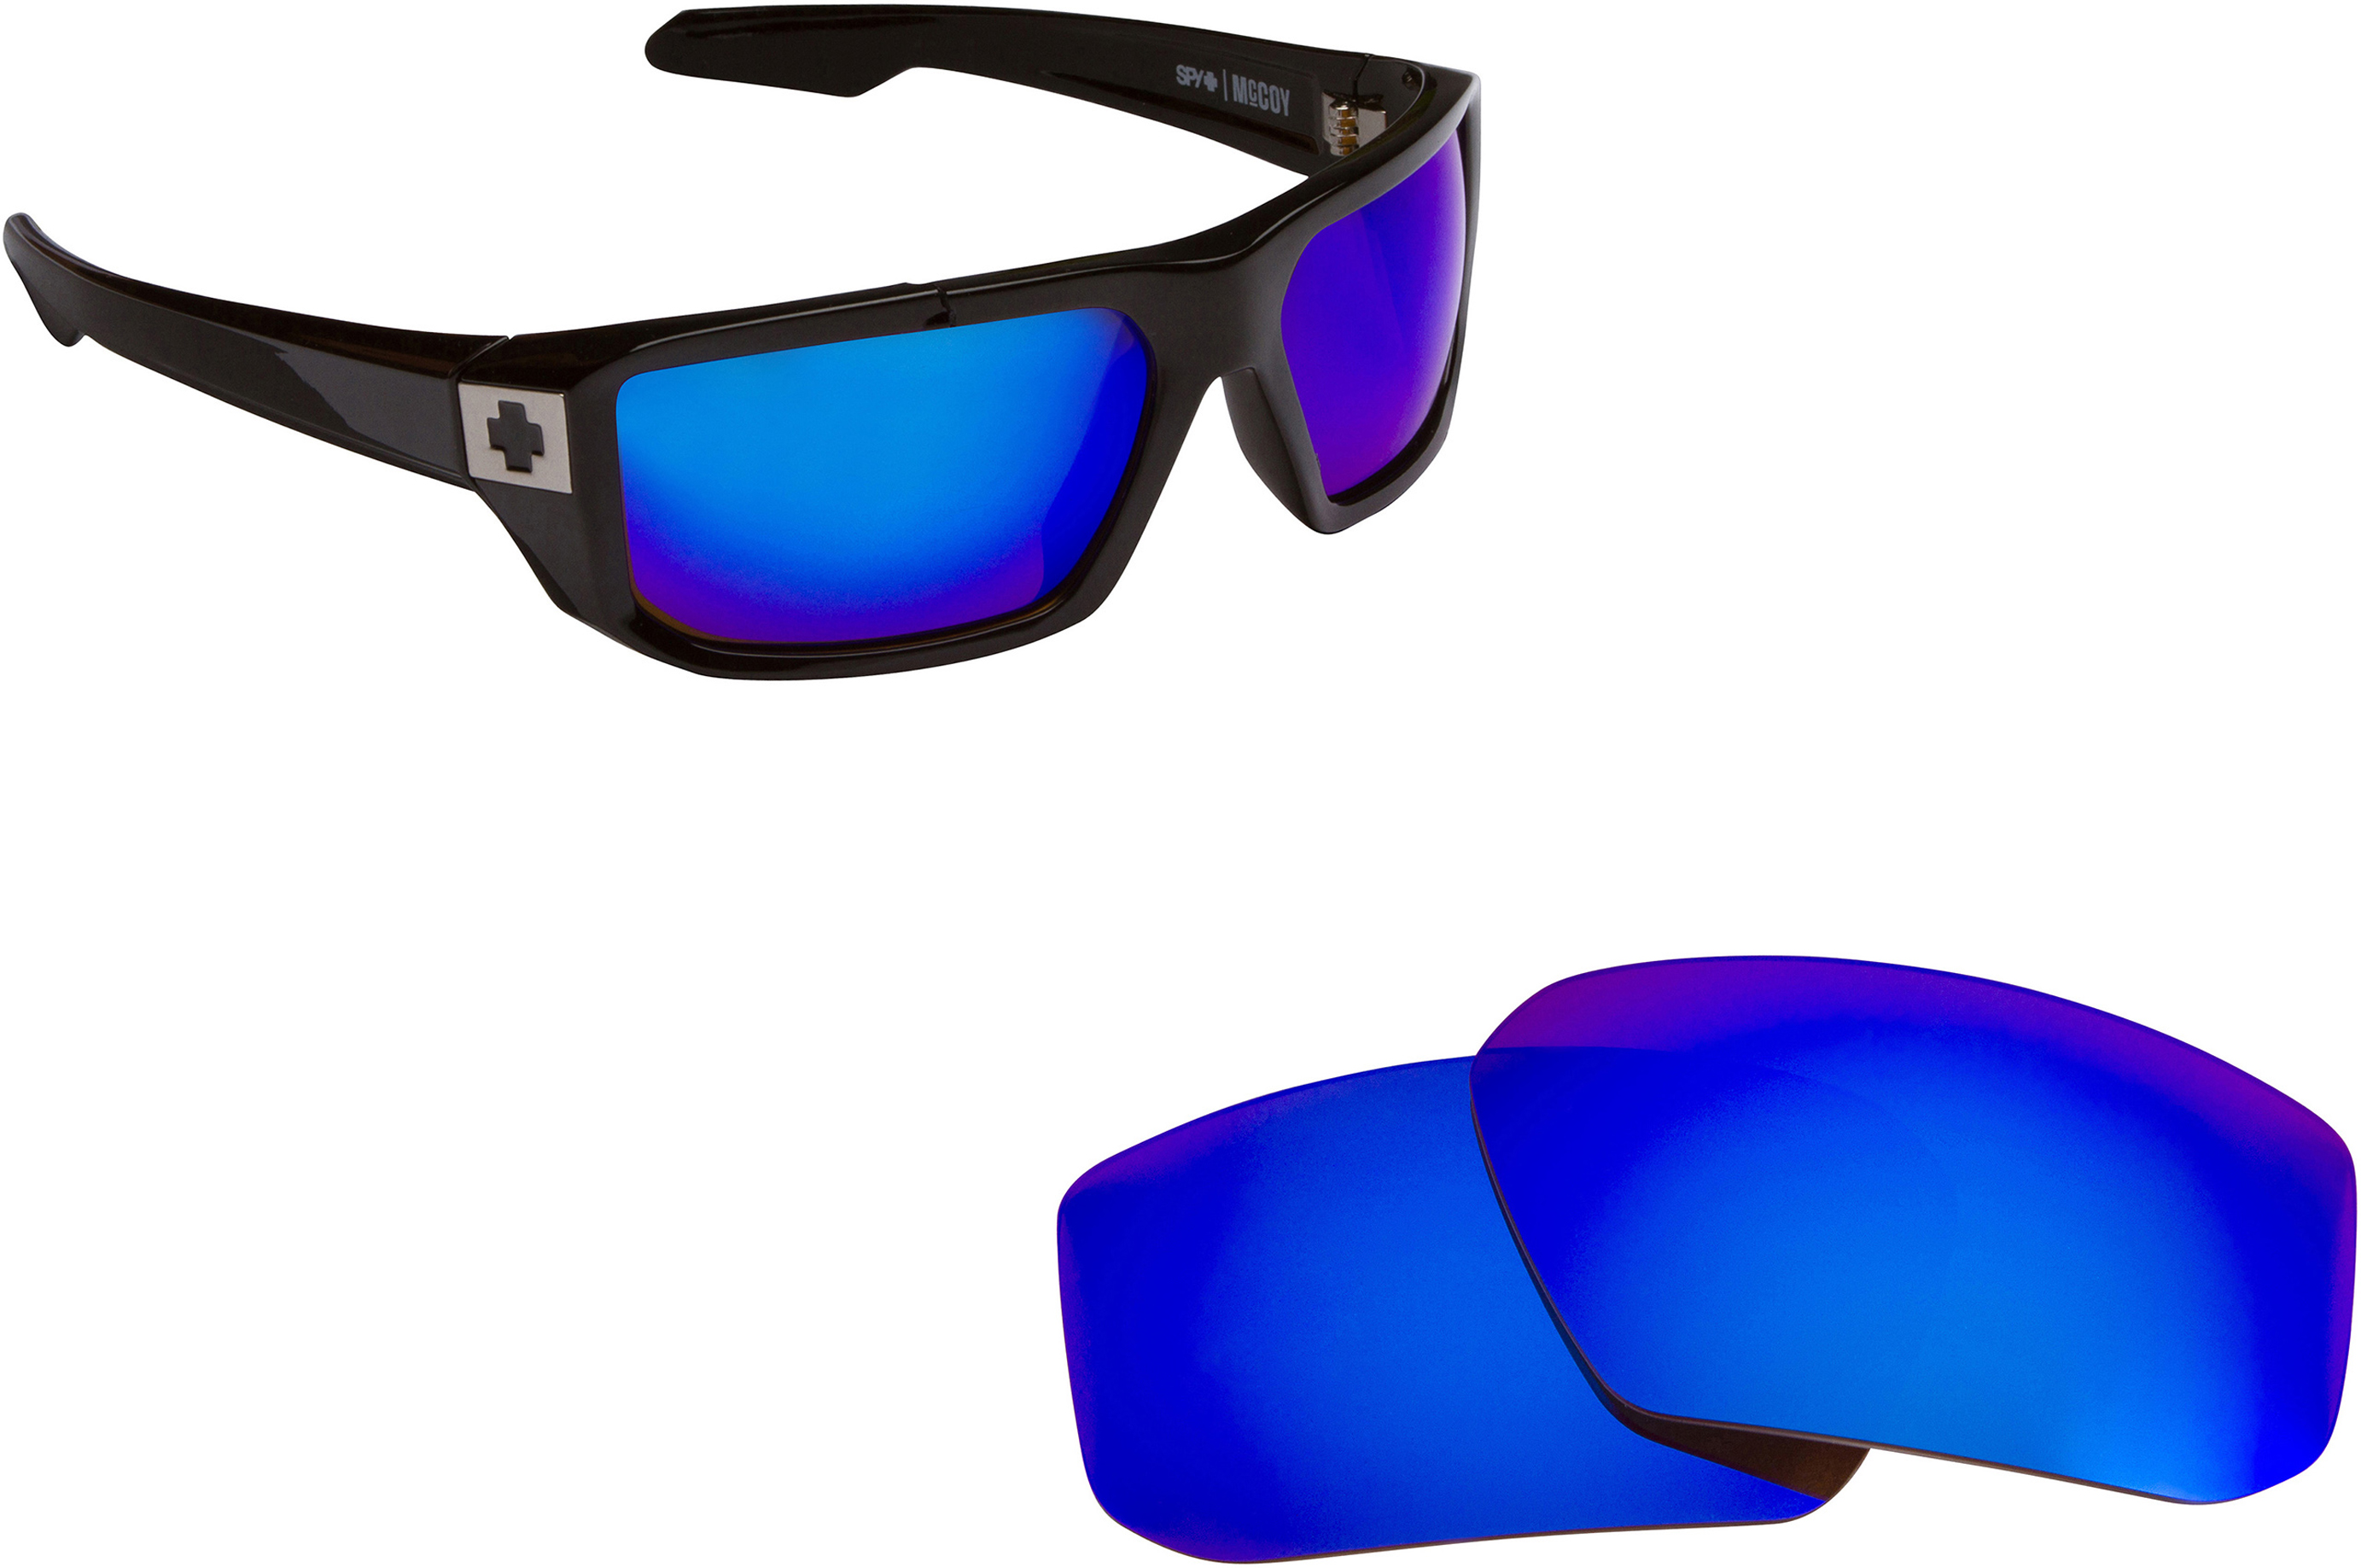 fc905bfb5fa Hielo Replacement Lenses by SEEK OPTICS to fit SPY OPTICS Sunglasses ...